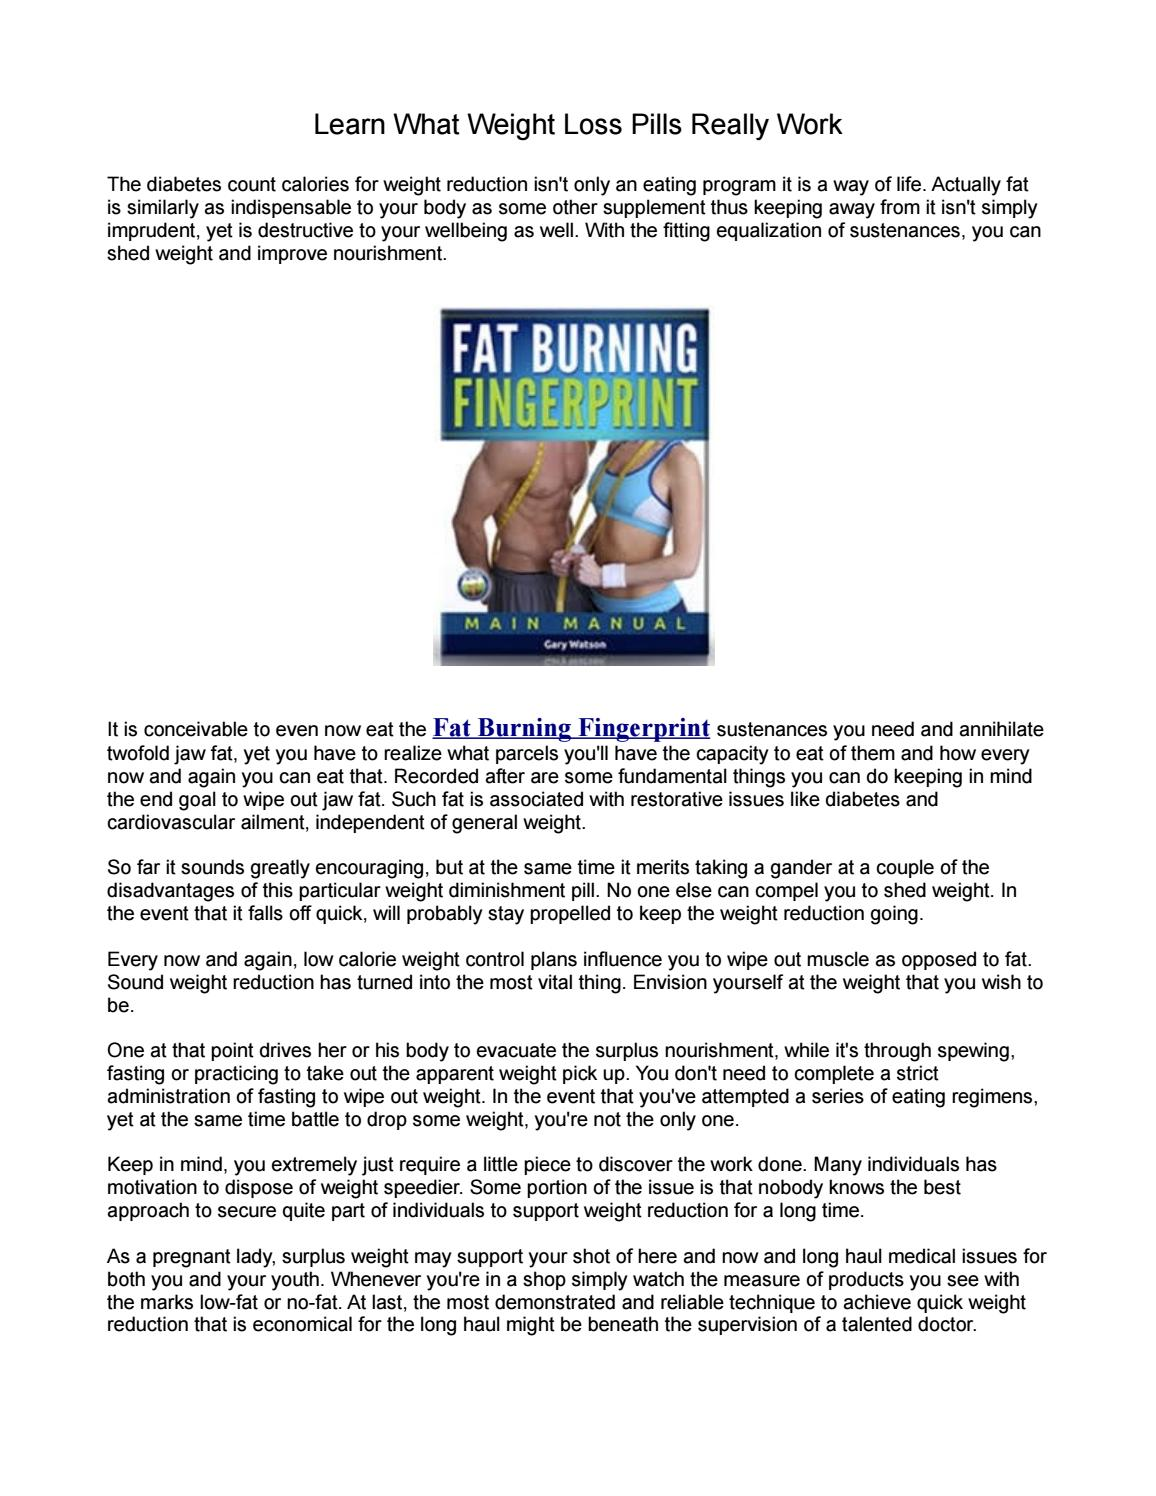 fast acting weight loss pills over the counter